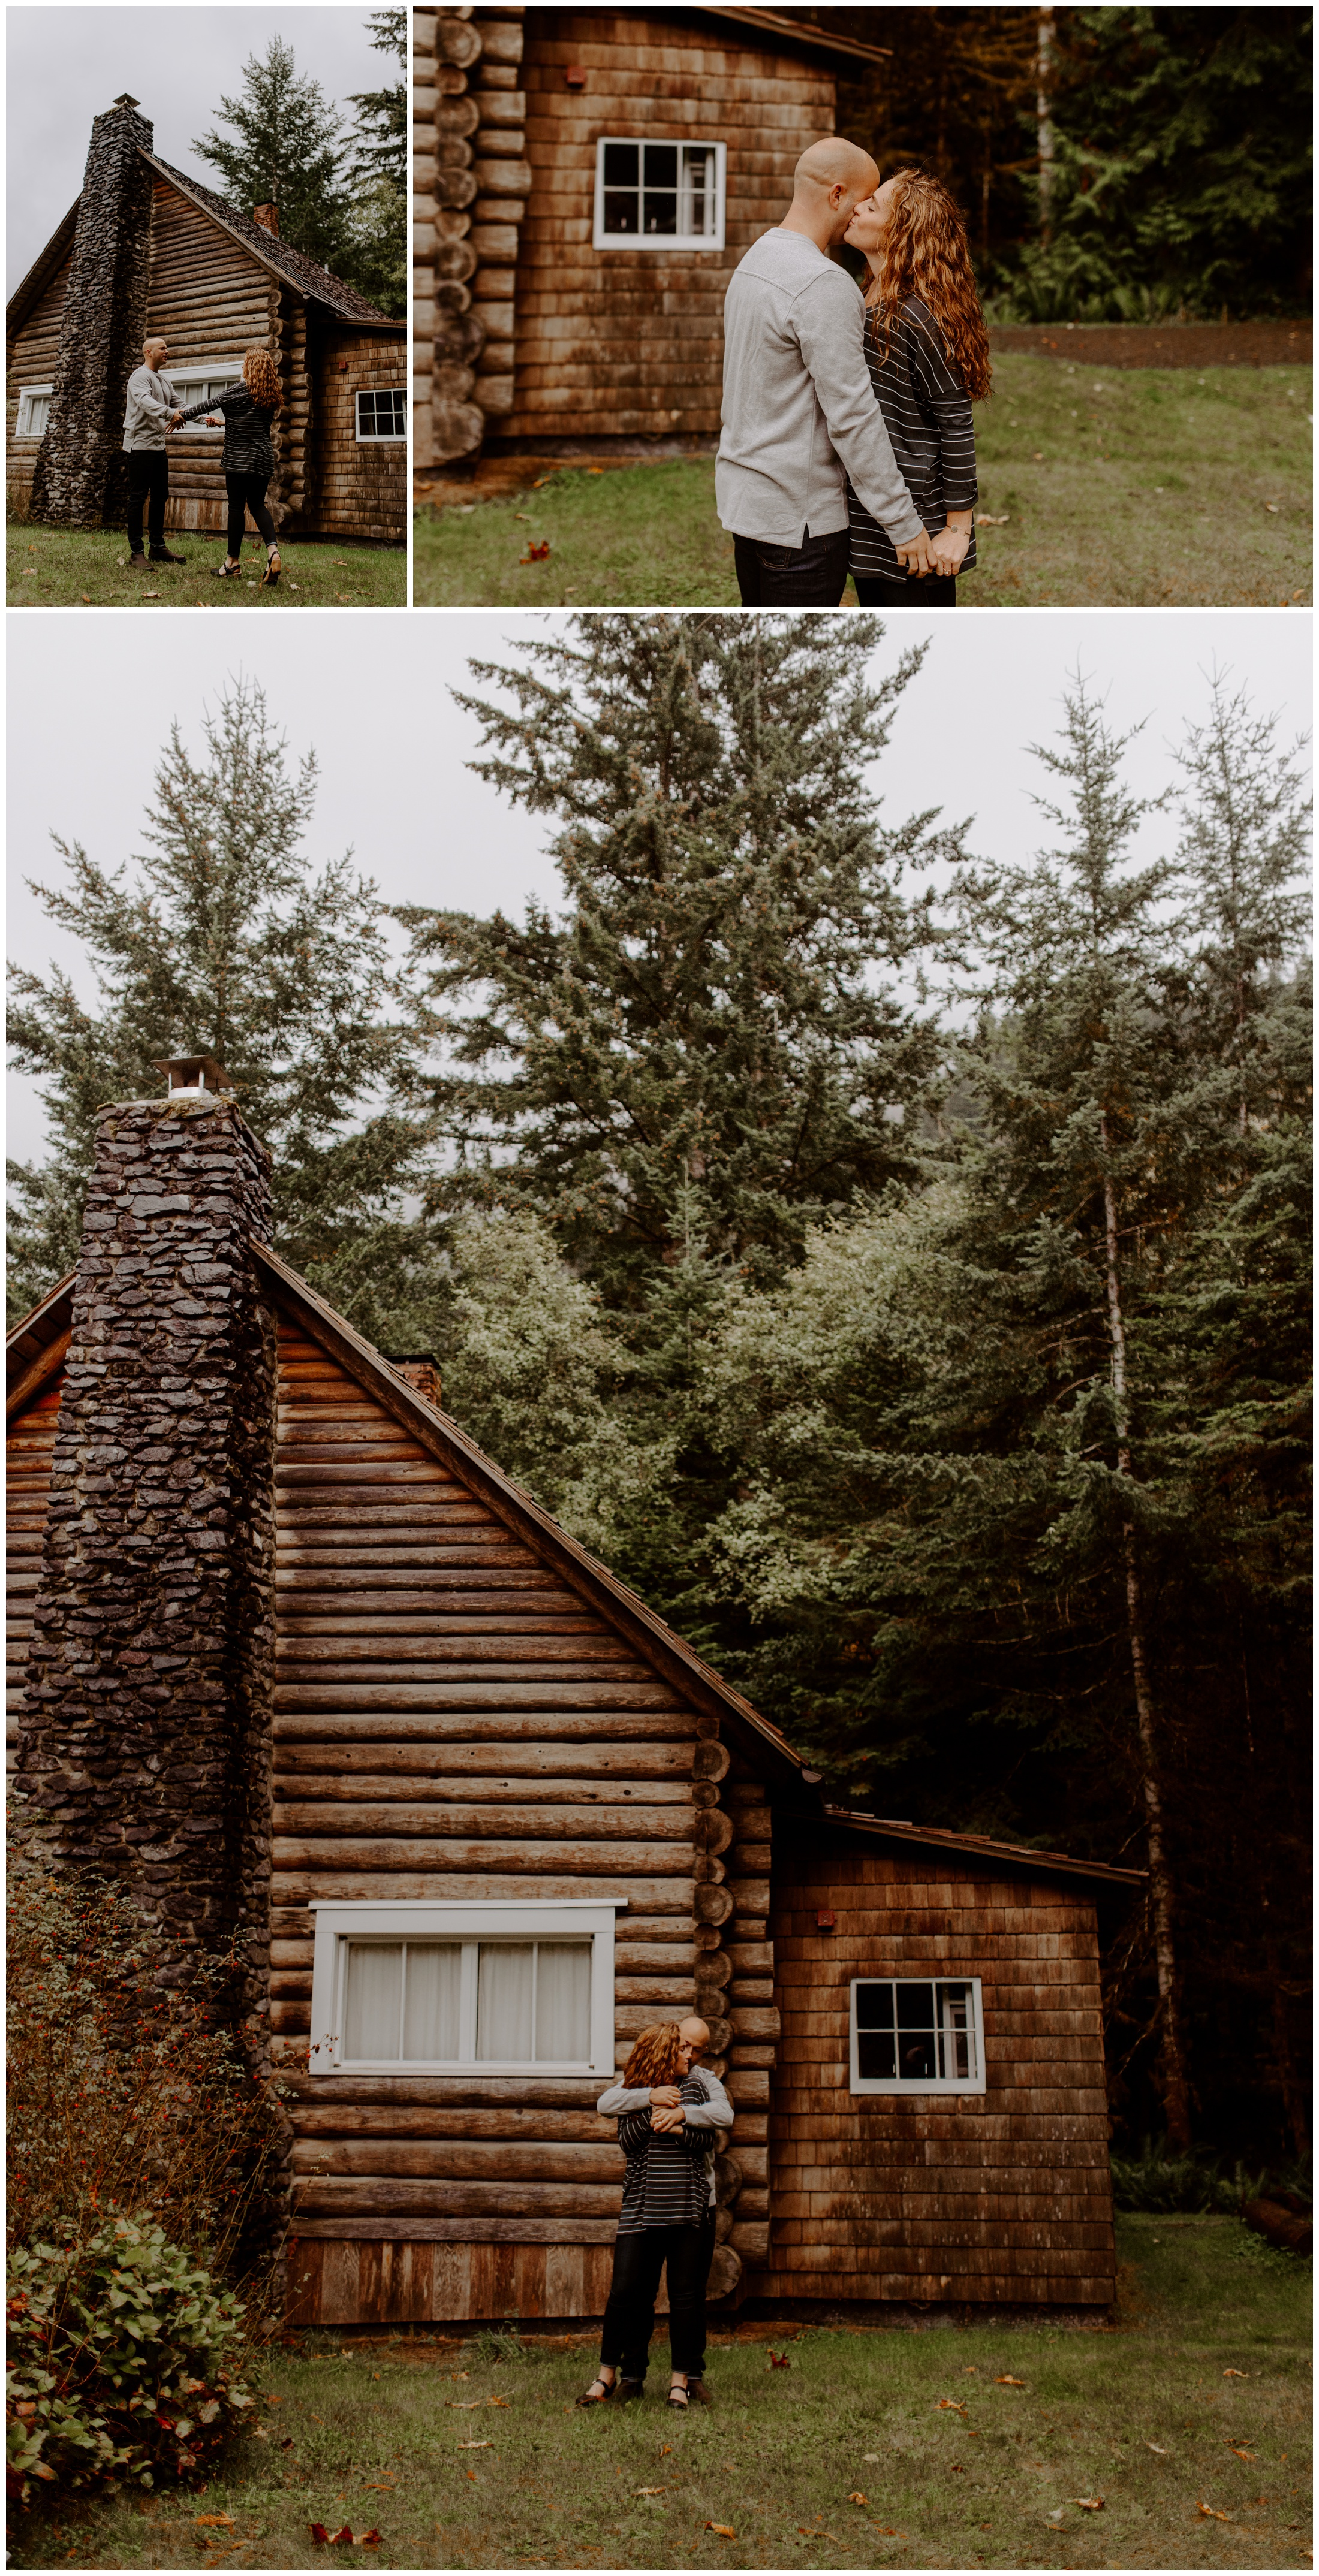 Olympic National Park Engagements | Jessica Heron Images 015.JPG